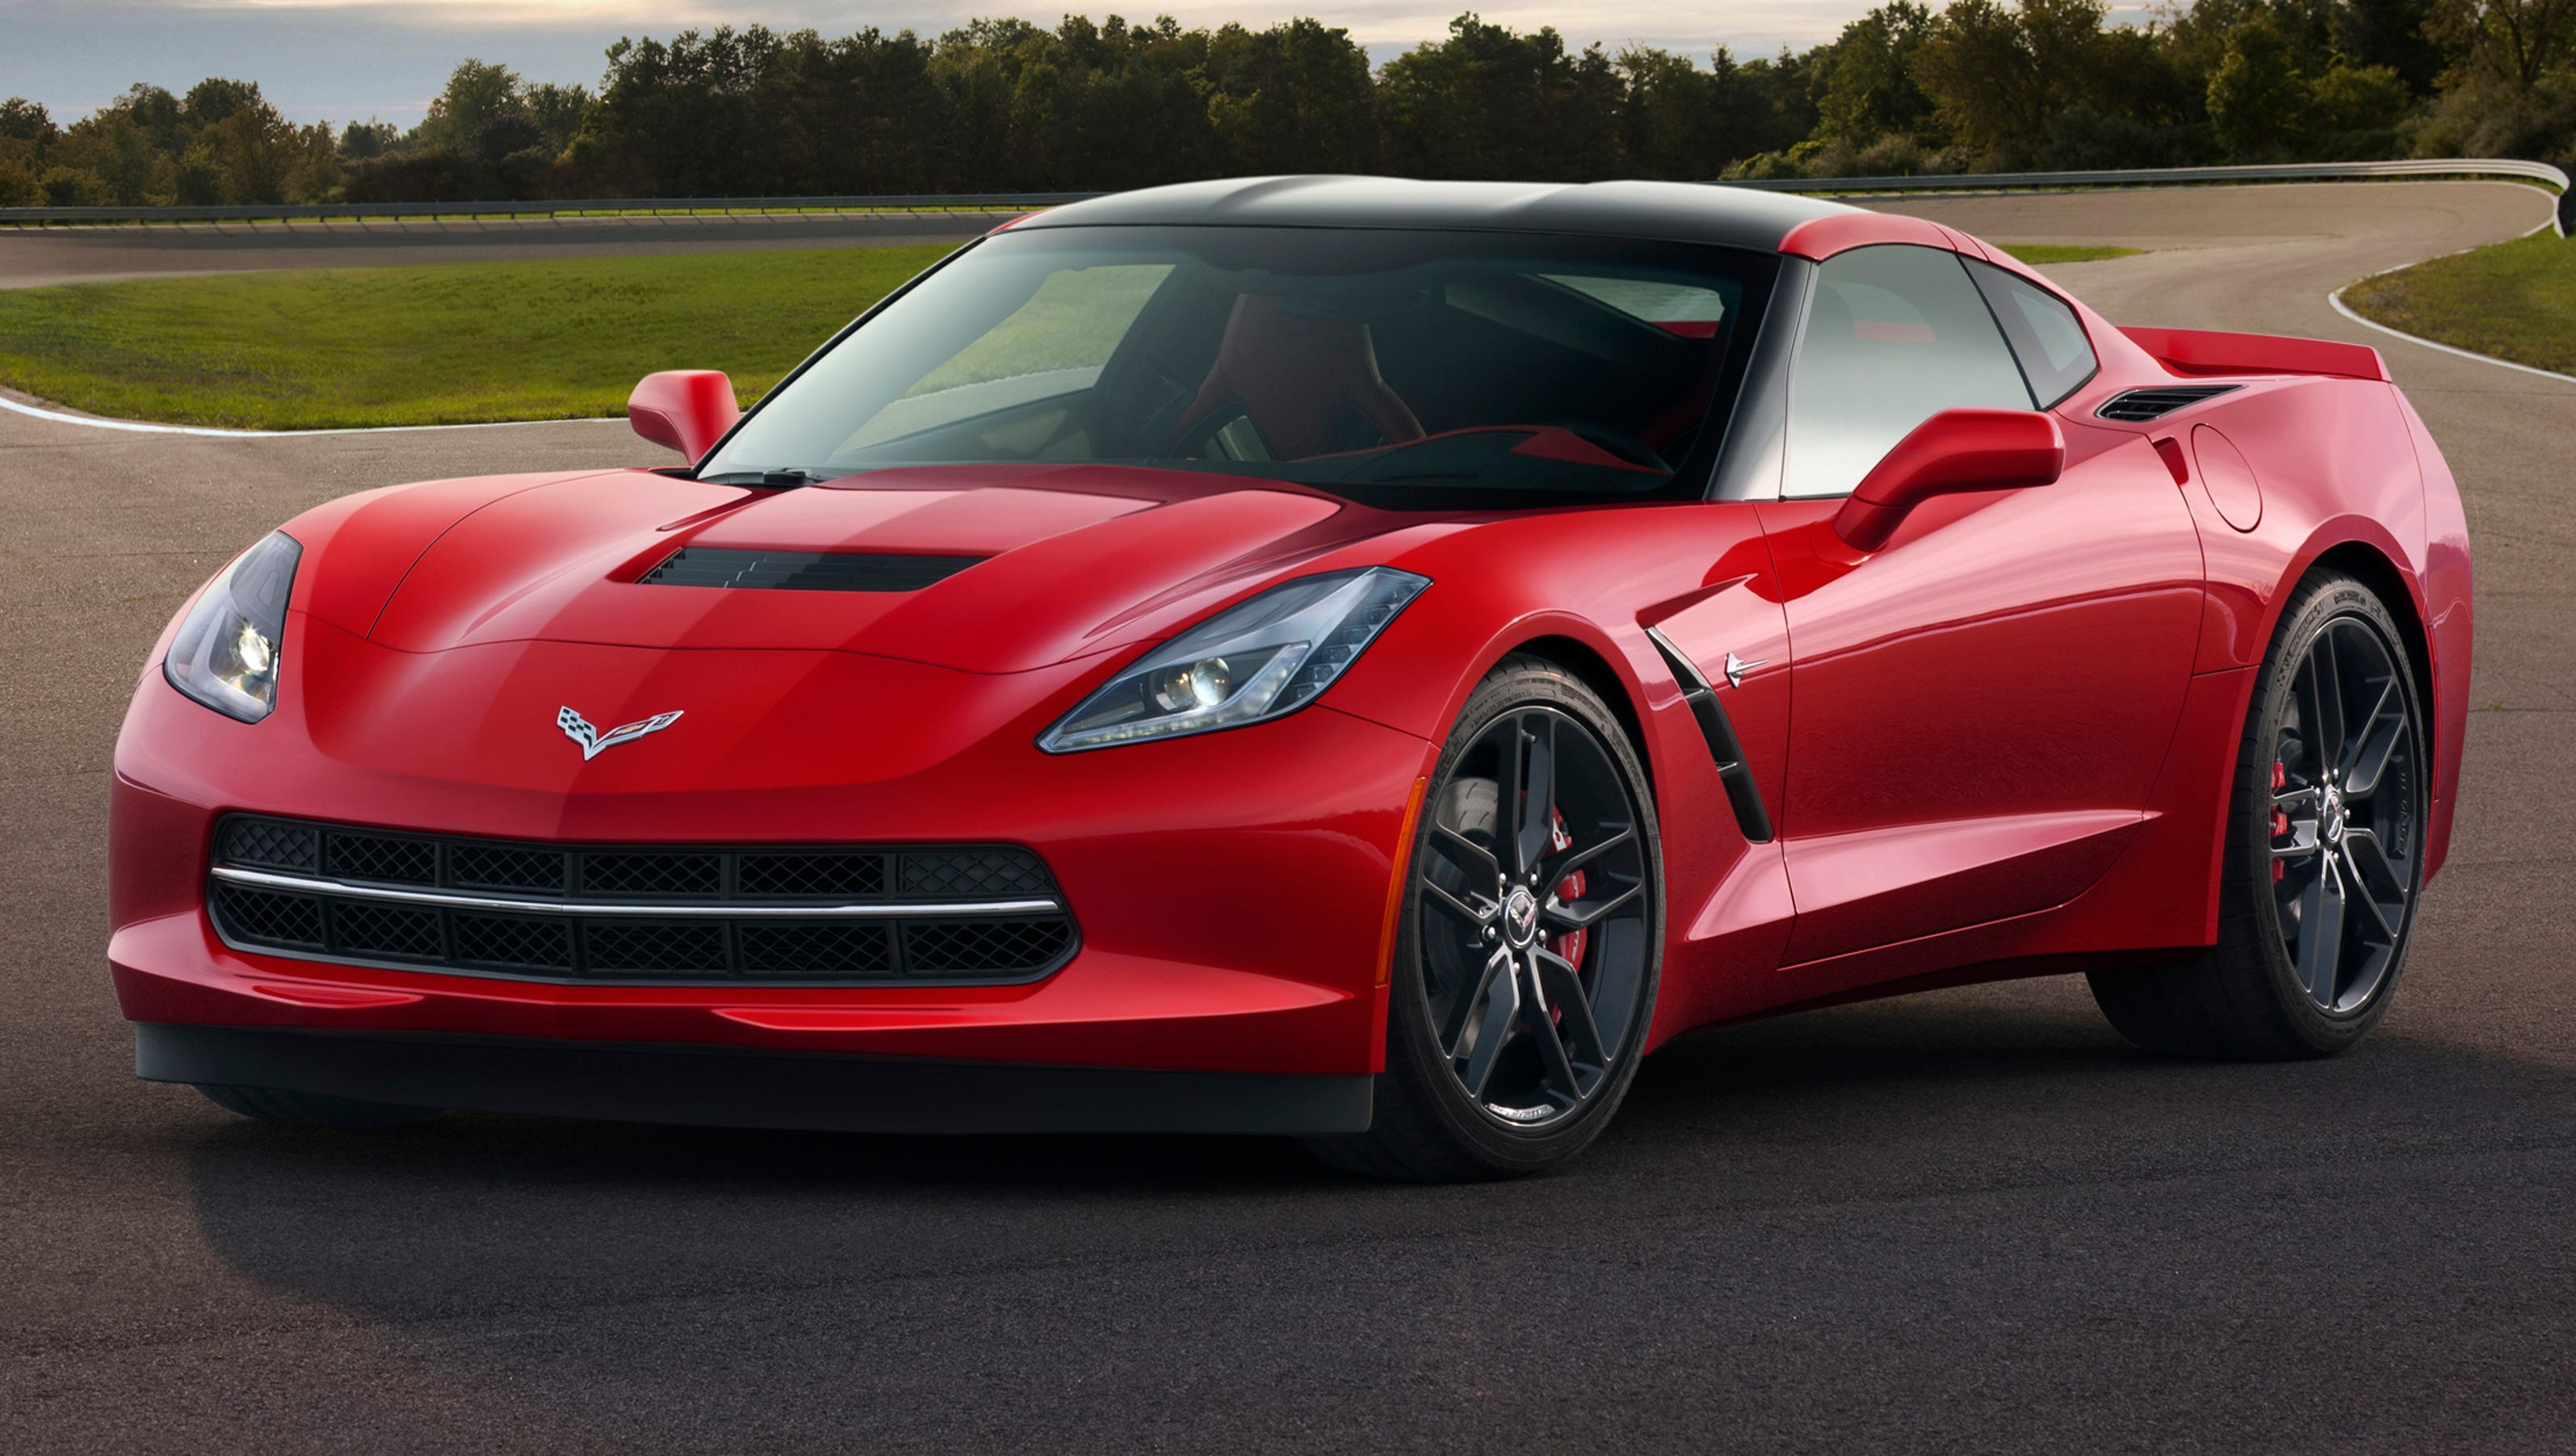 gm jacks up price of 2014 corvette by 2 000. Cars Review. Best American Auto & Cars Review